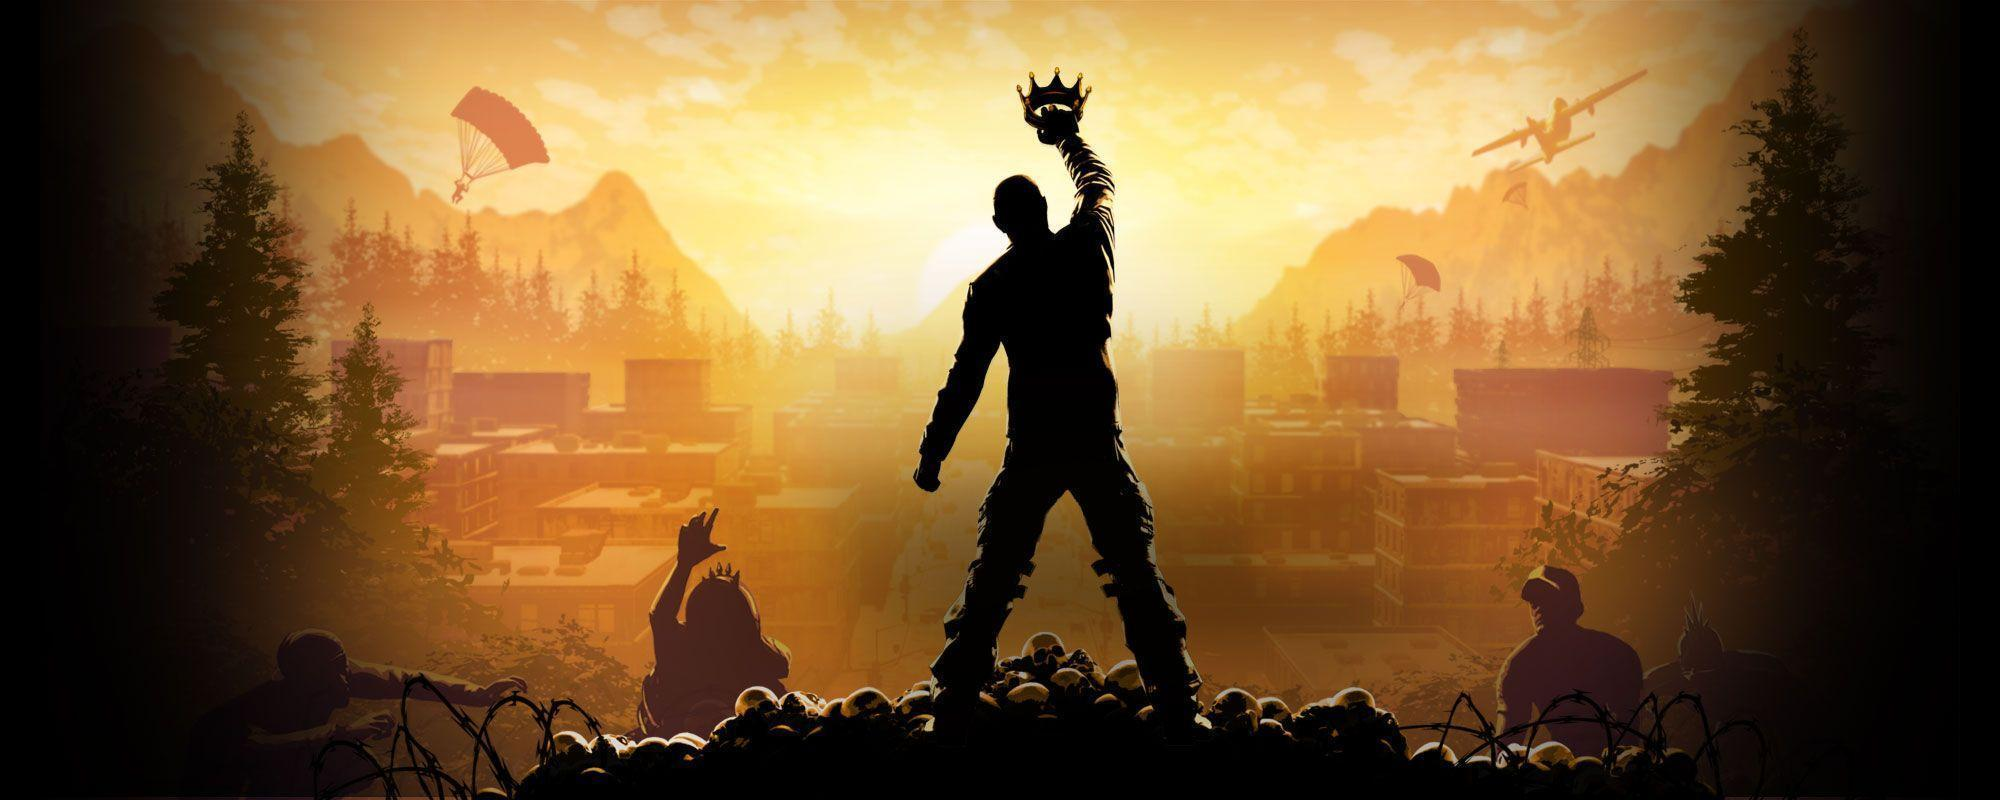 Pubg Wallpapers 65: H1Z1: King Of The Kill Wallpapers